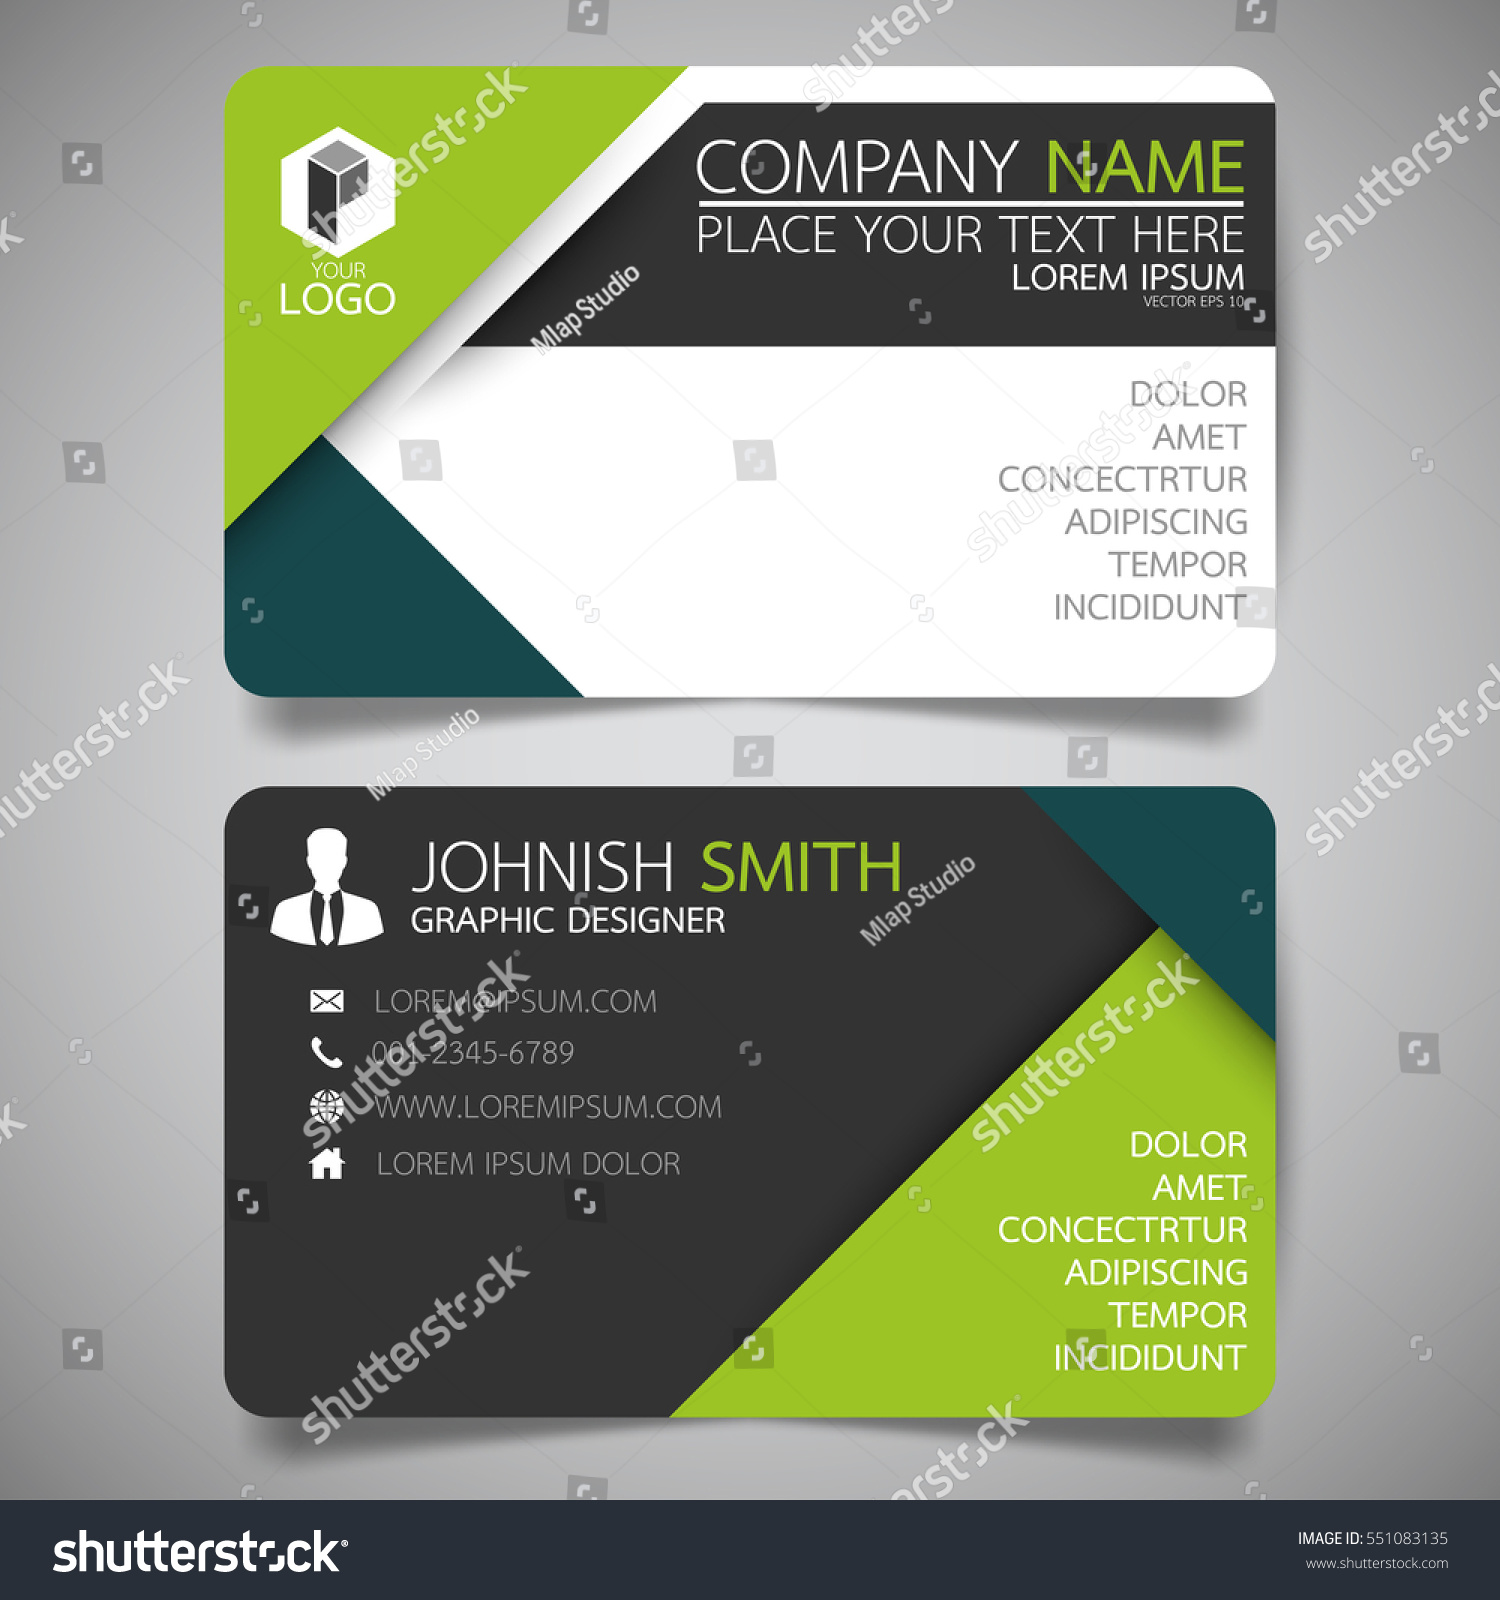 vertical id badge template - shefftunes.tk